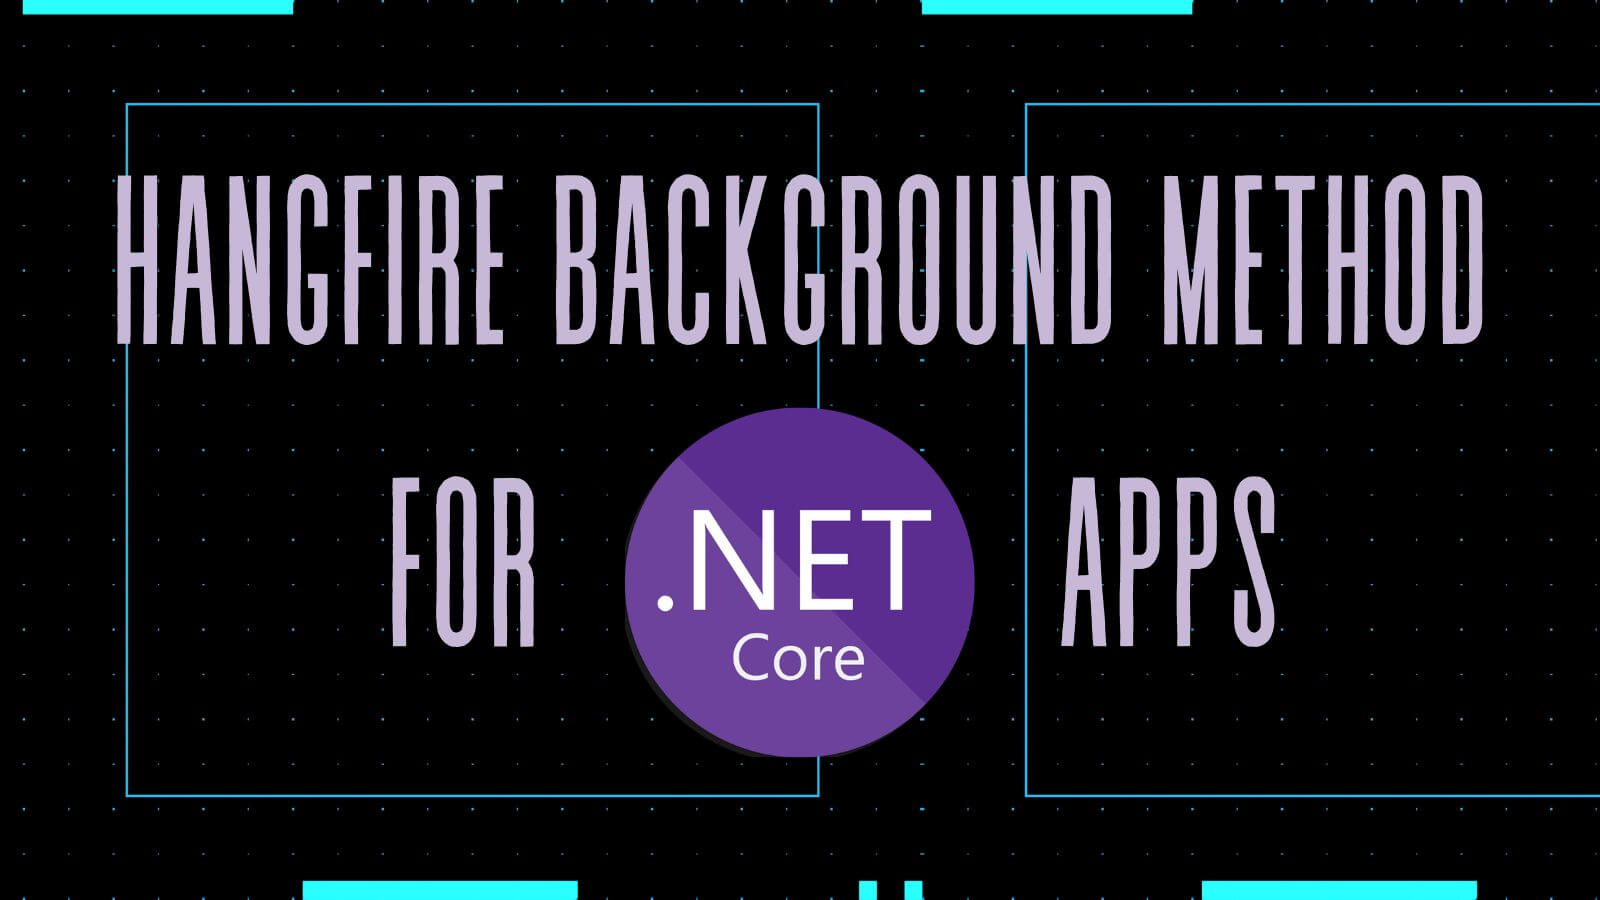 Hangfire Background Method For Apps